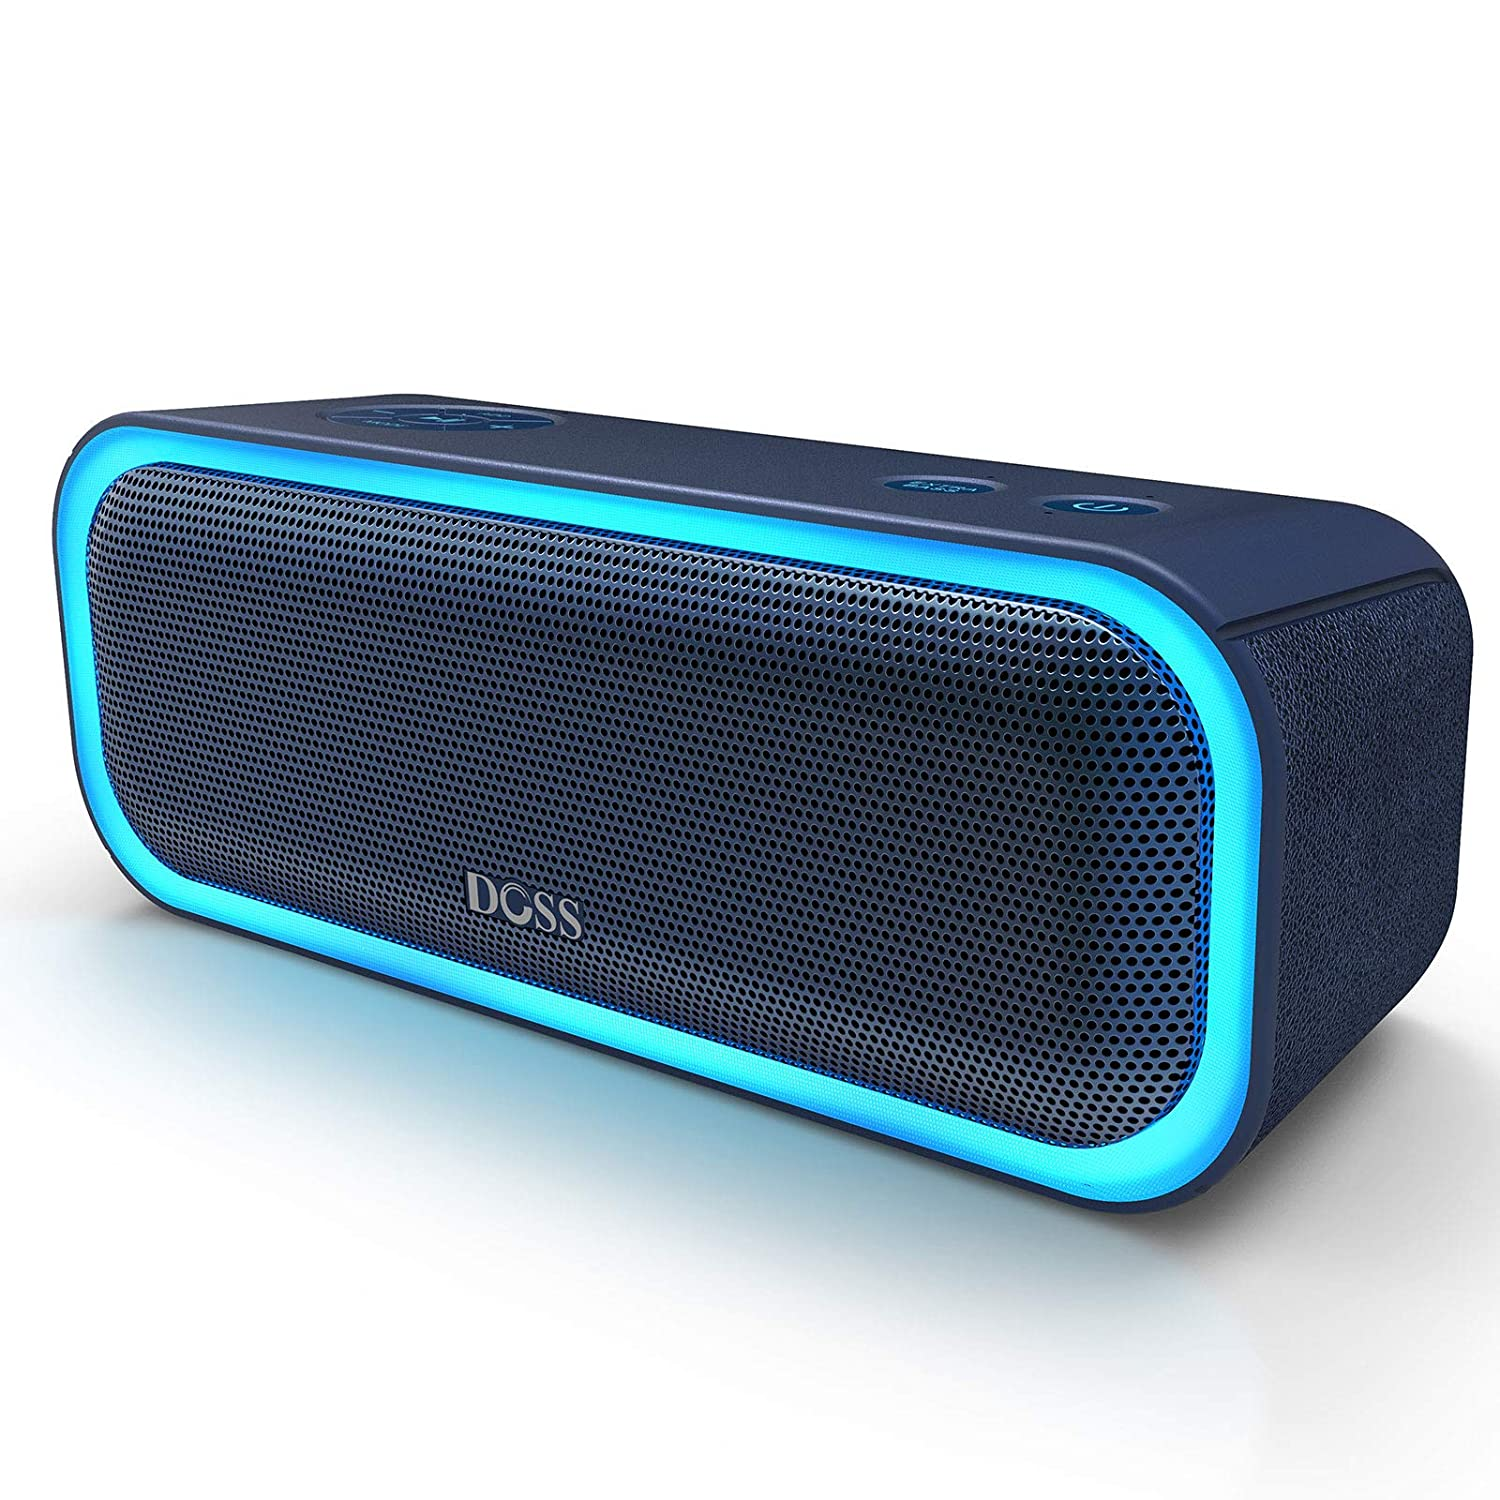 Doss SoundBox Pro Portable Wireless Bluetooth Speaker for ₹3,125